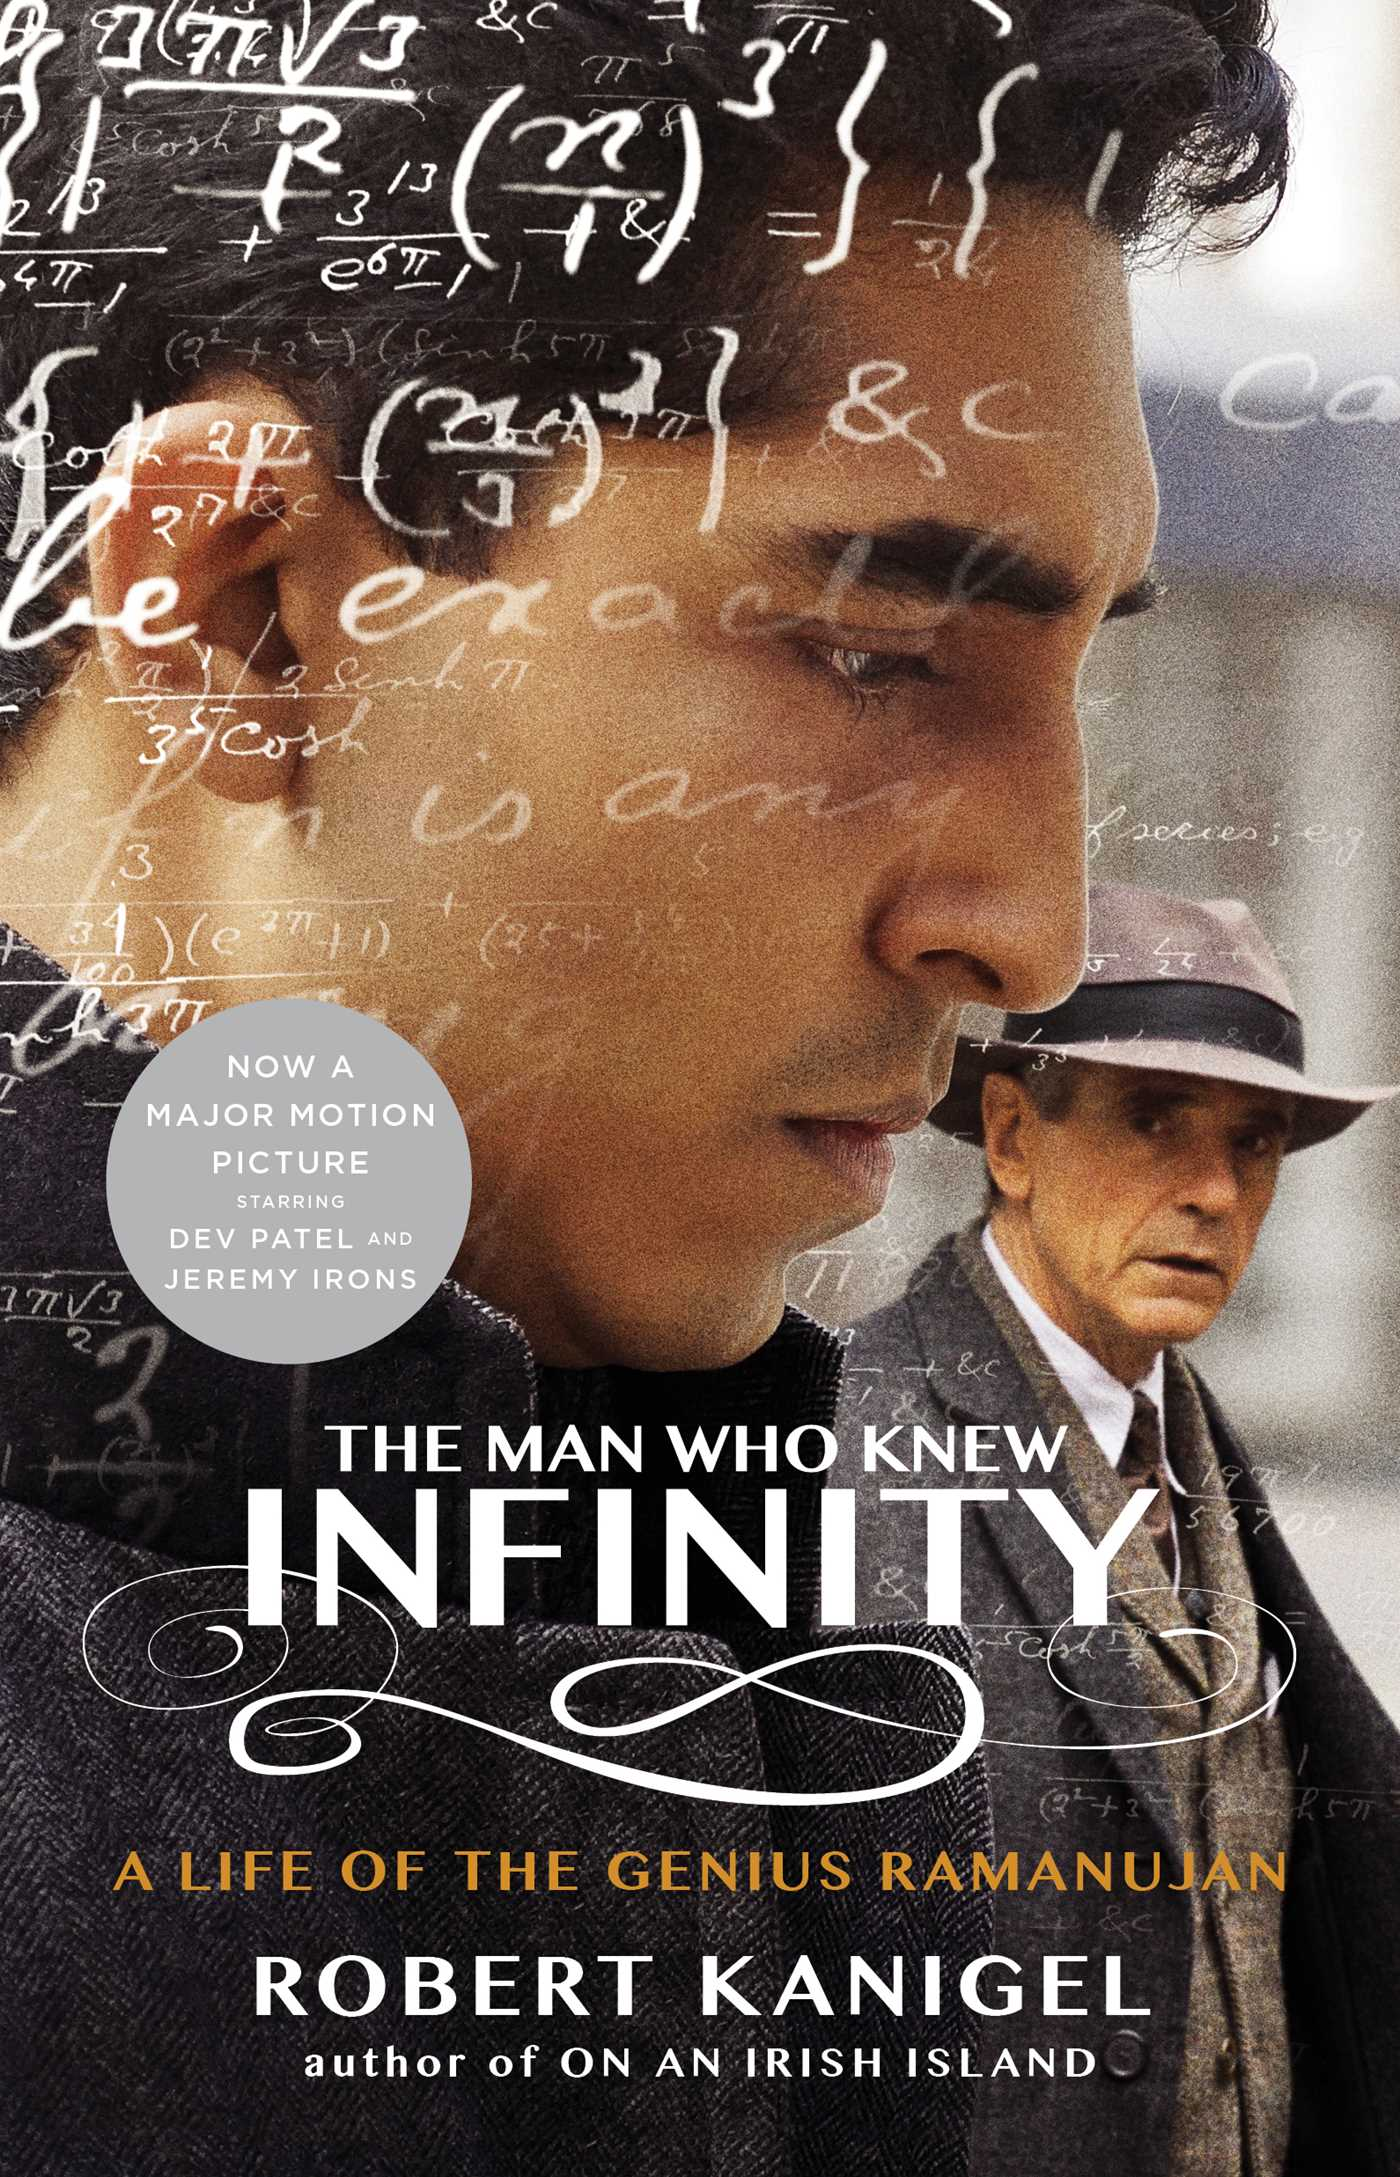 The man who knew infinity 9781439121863 hr